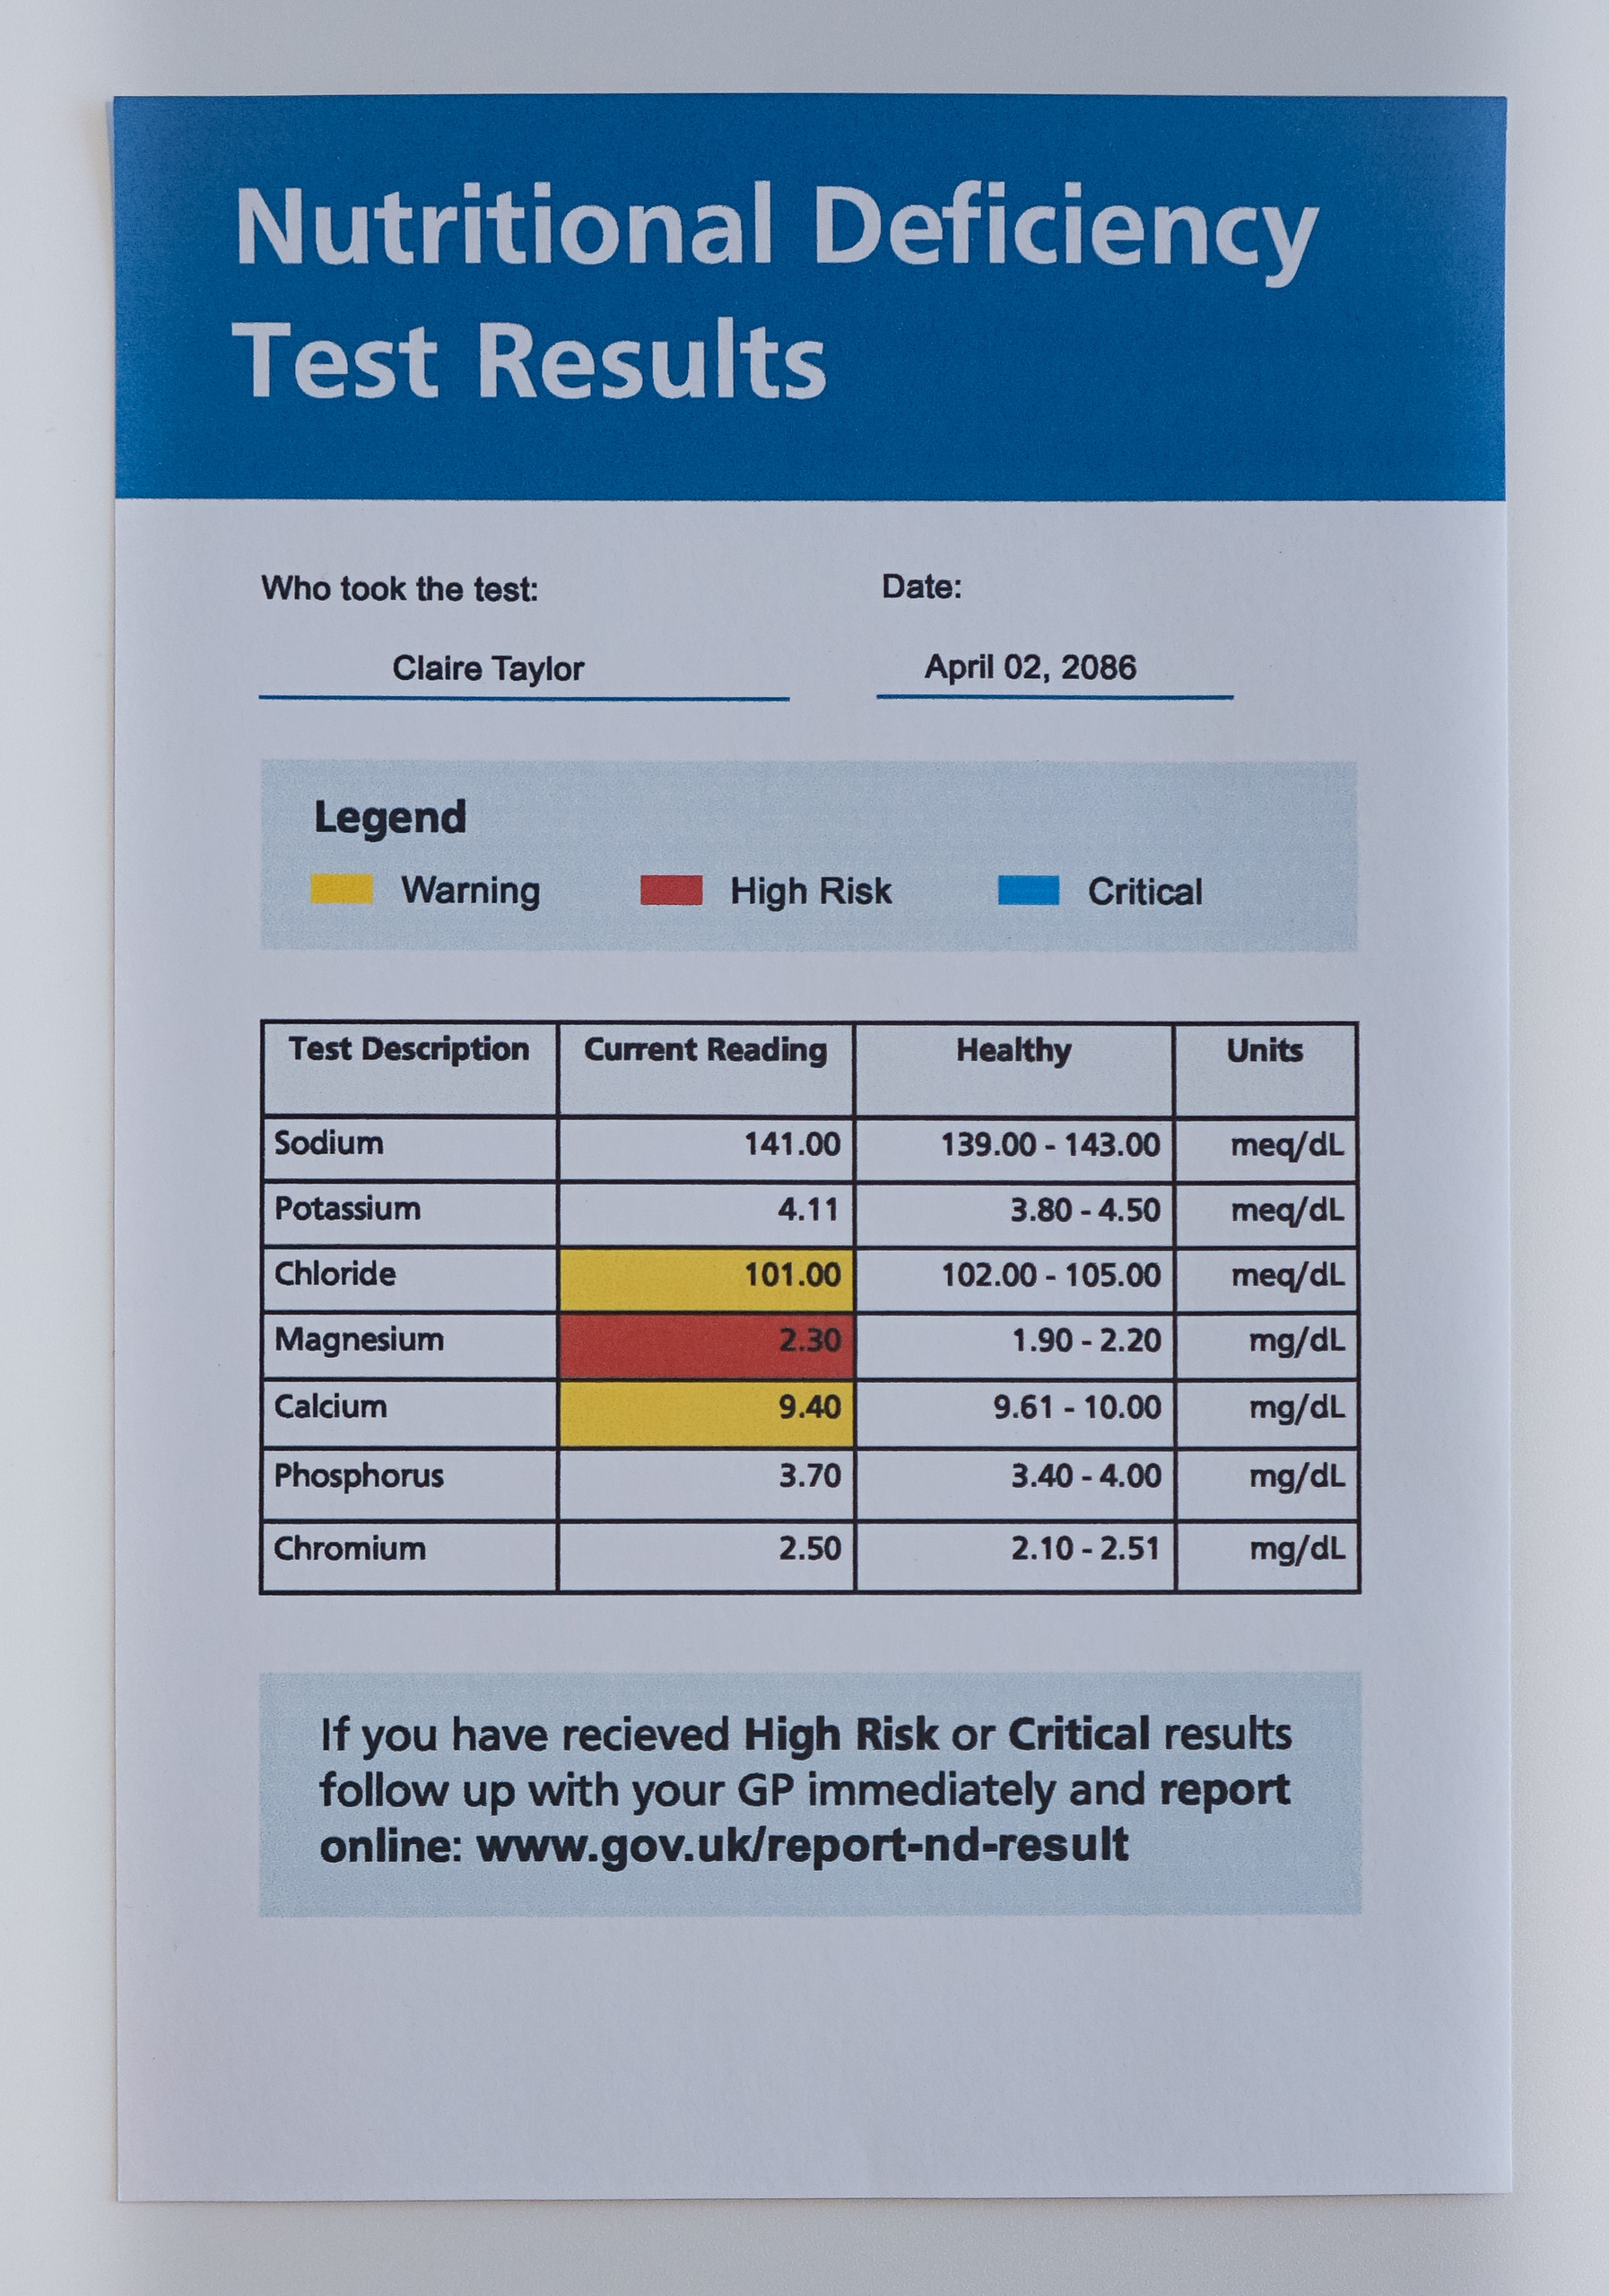 Nutrient Deficiency Test Results